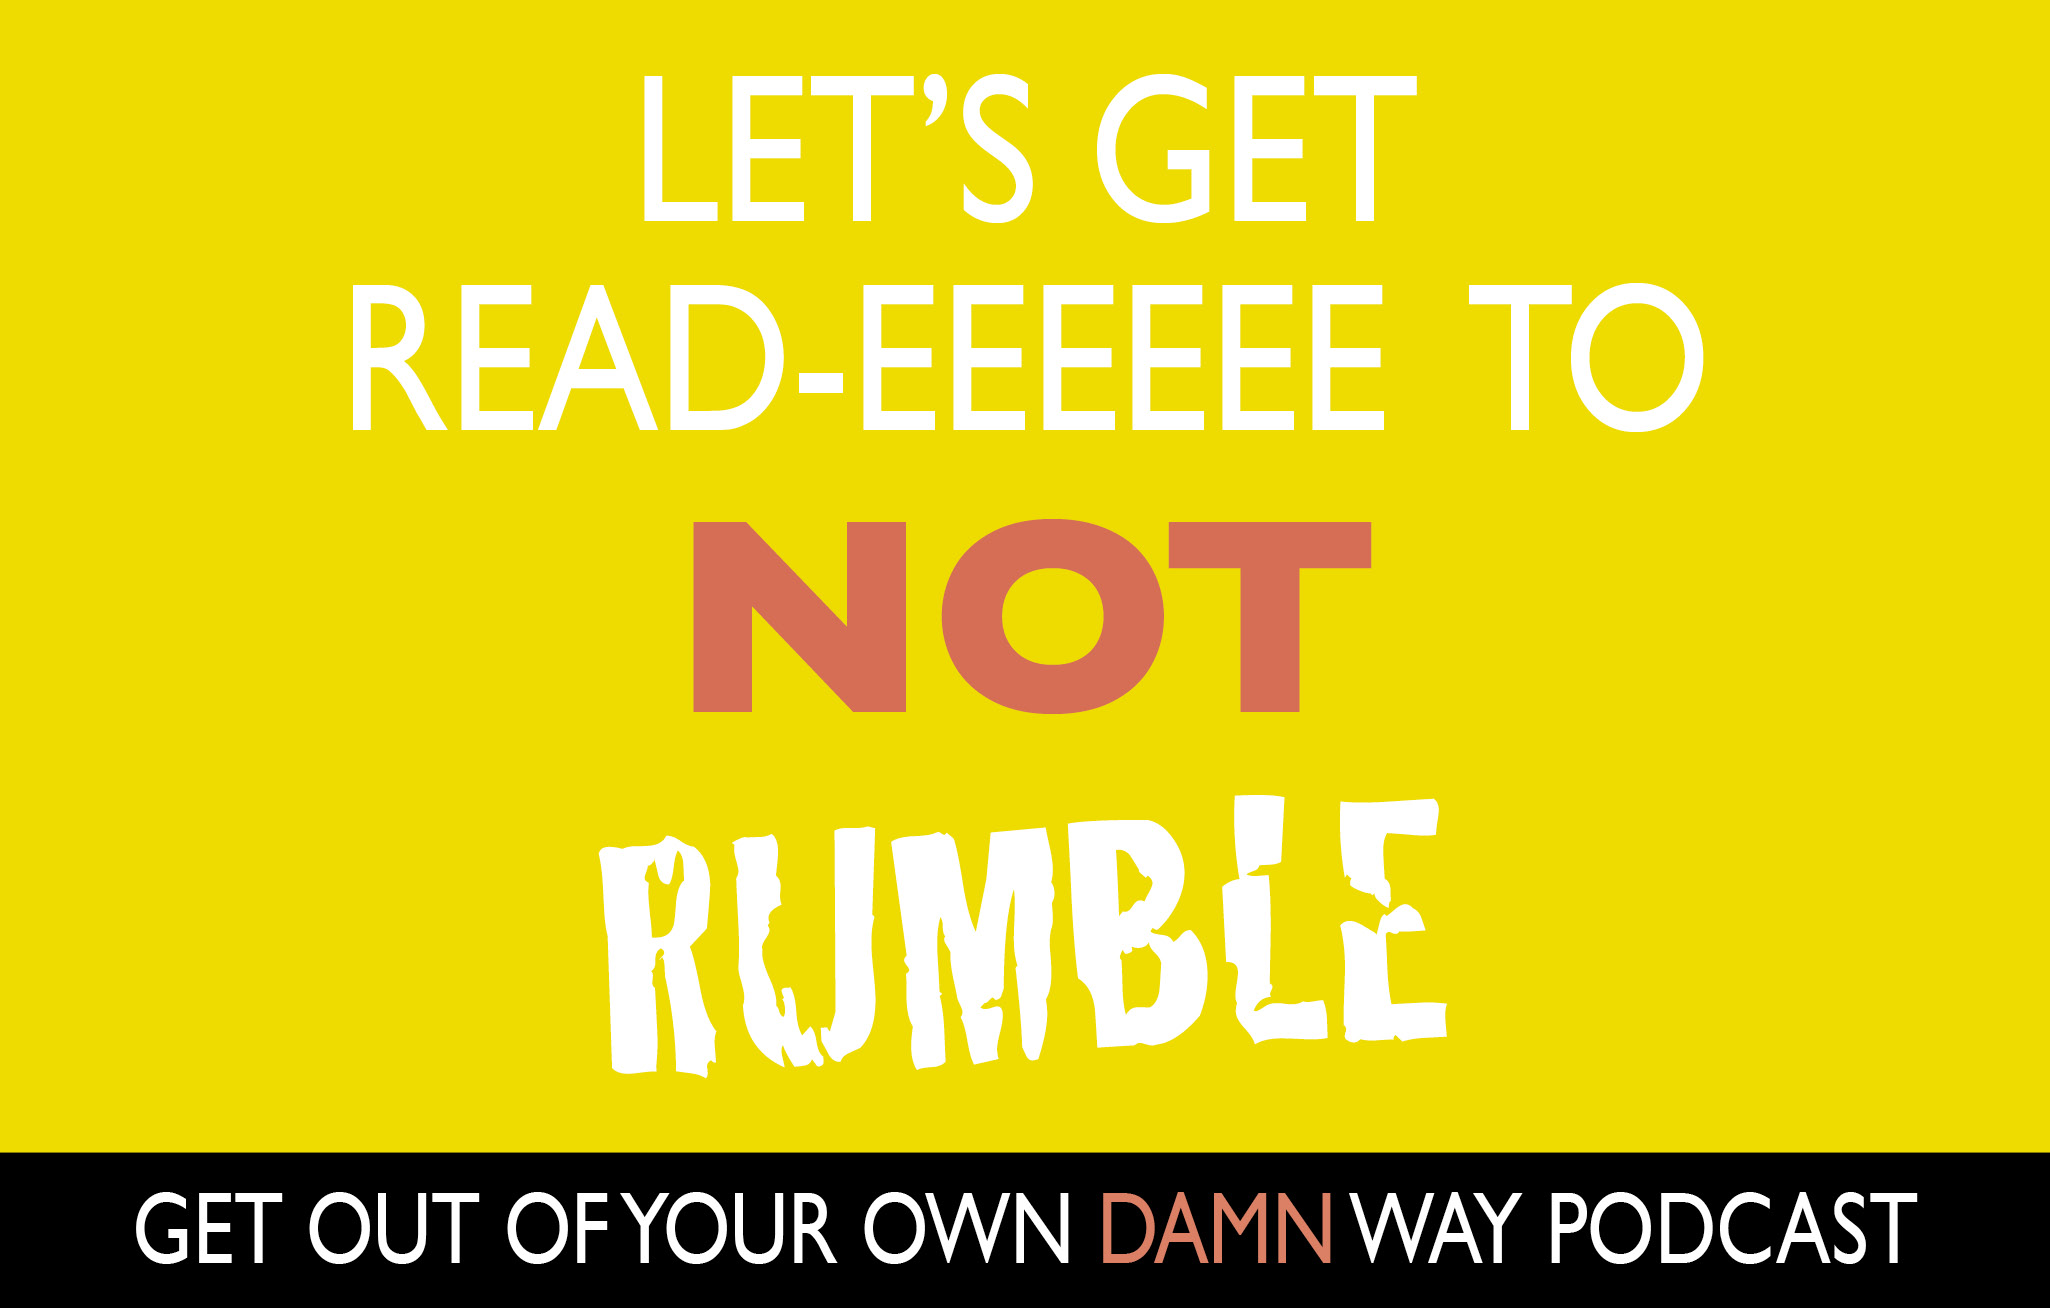 Let's Get Read-eeeeee to NOT Rumble!